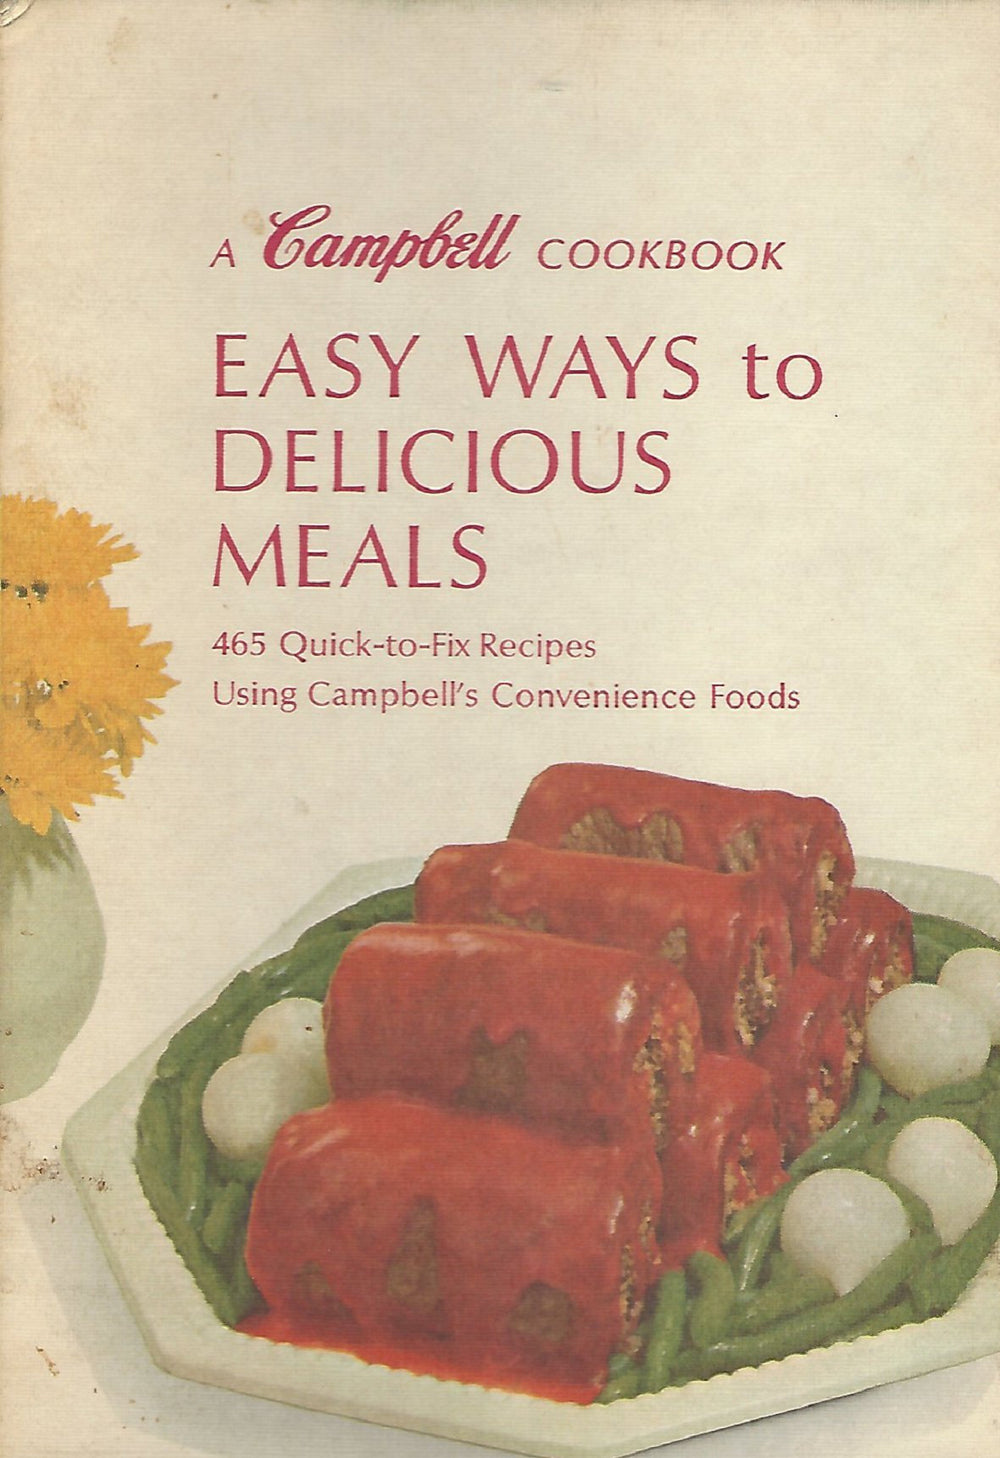 A Campbell Cookbook-Easy Ways to Delicious Meals 1970